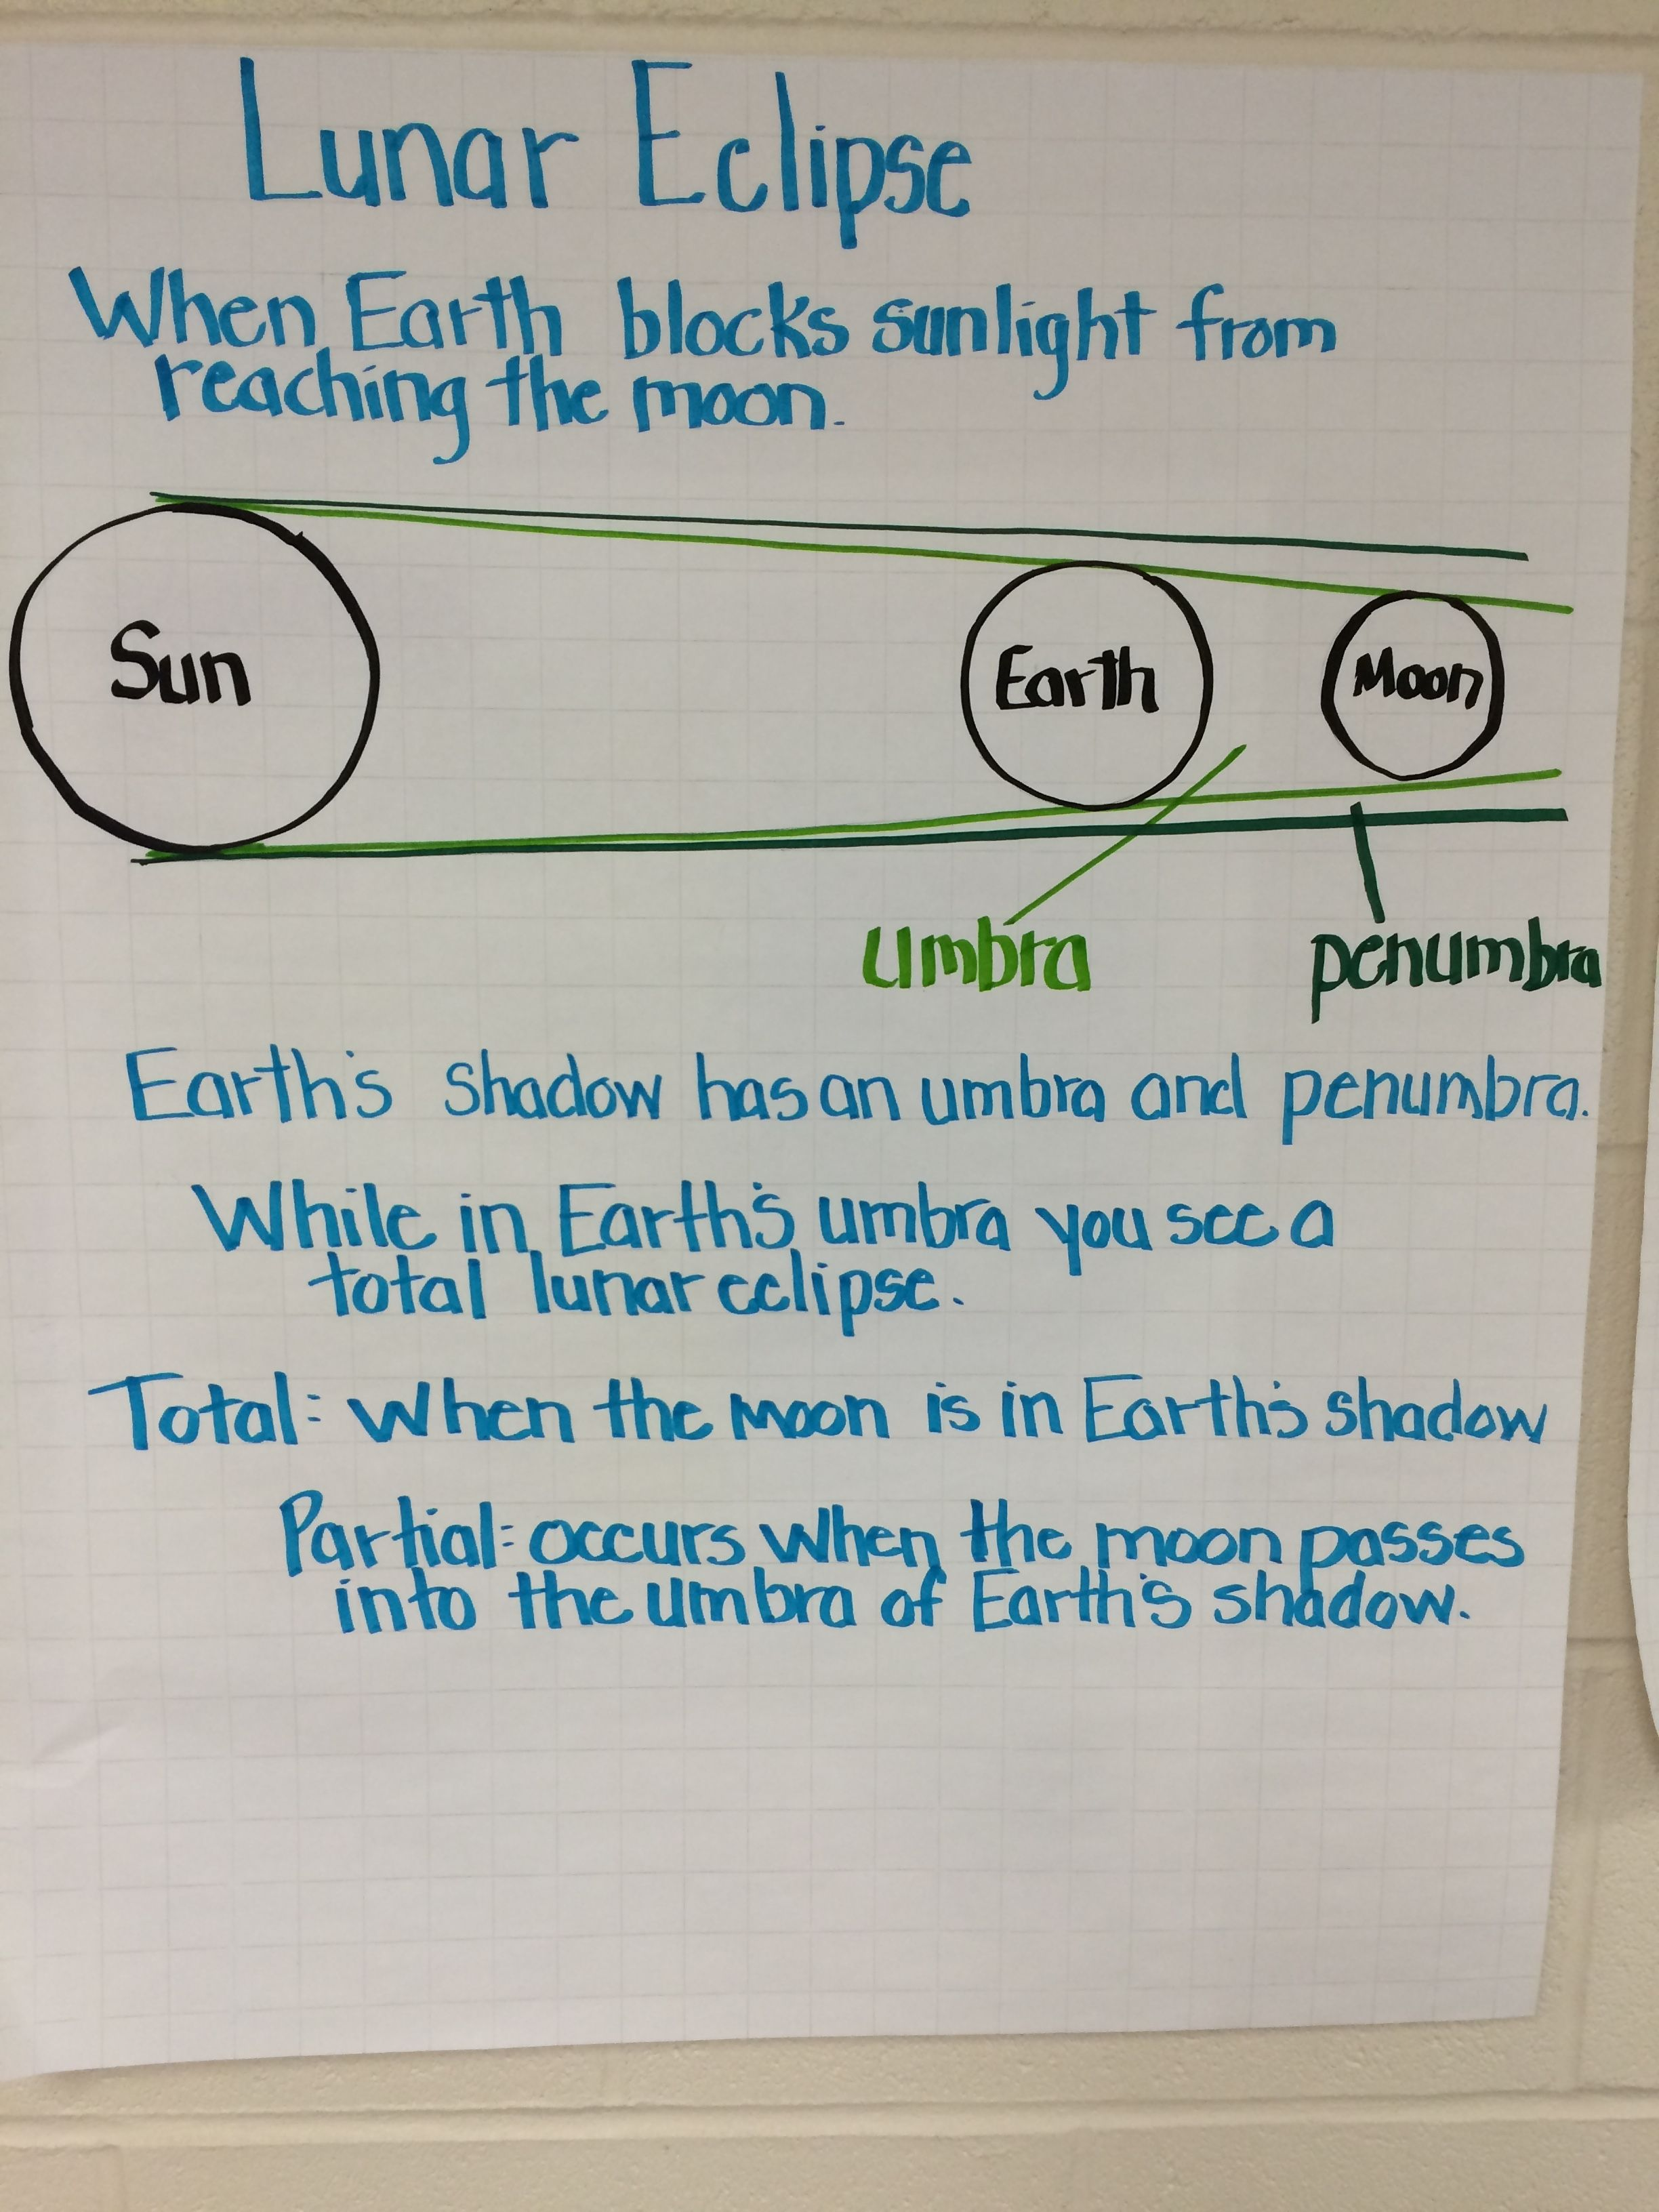 Lunar Eclipse Anchor Chart Science Anchor Charts Middle School Science Science Lesson Plans